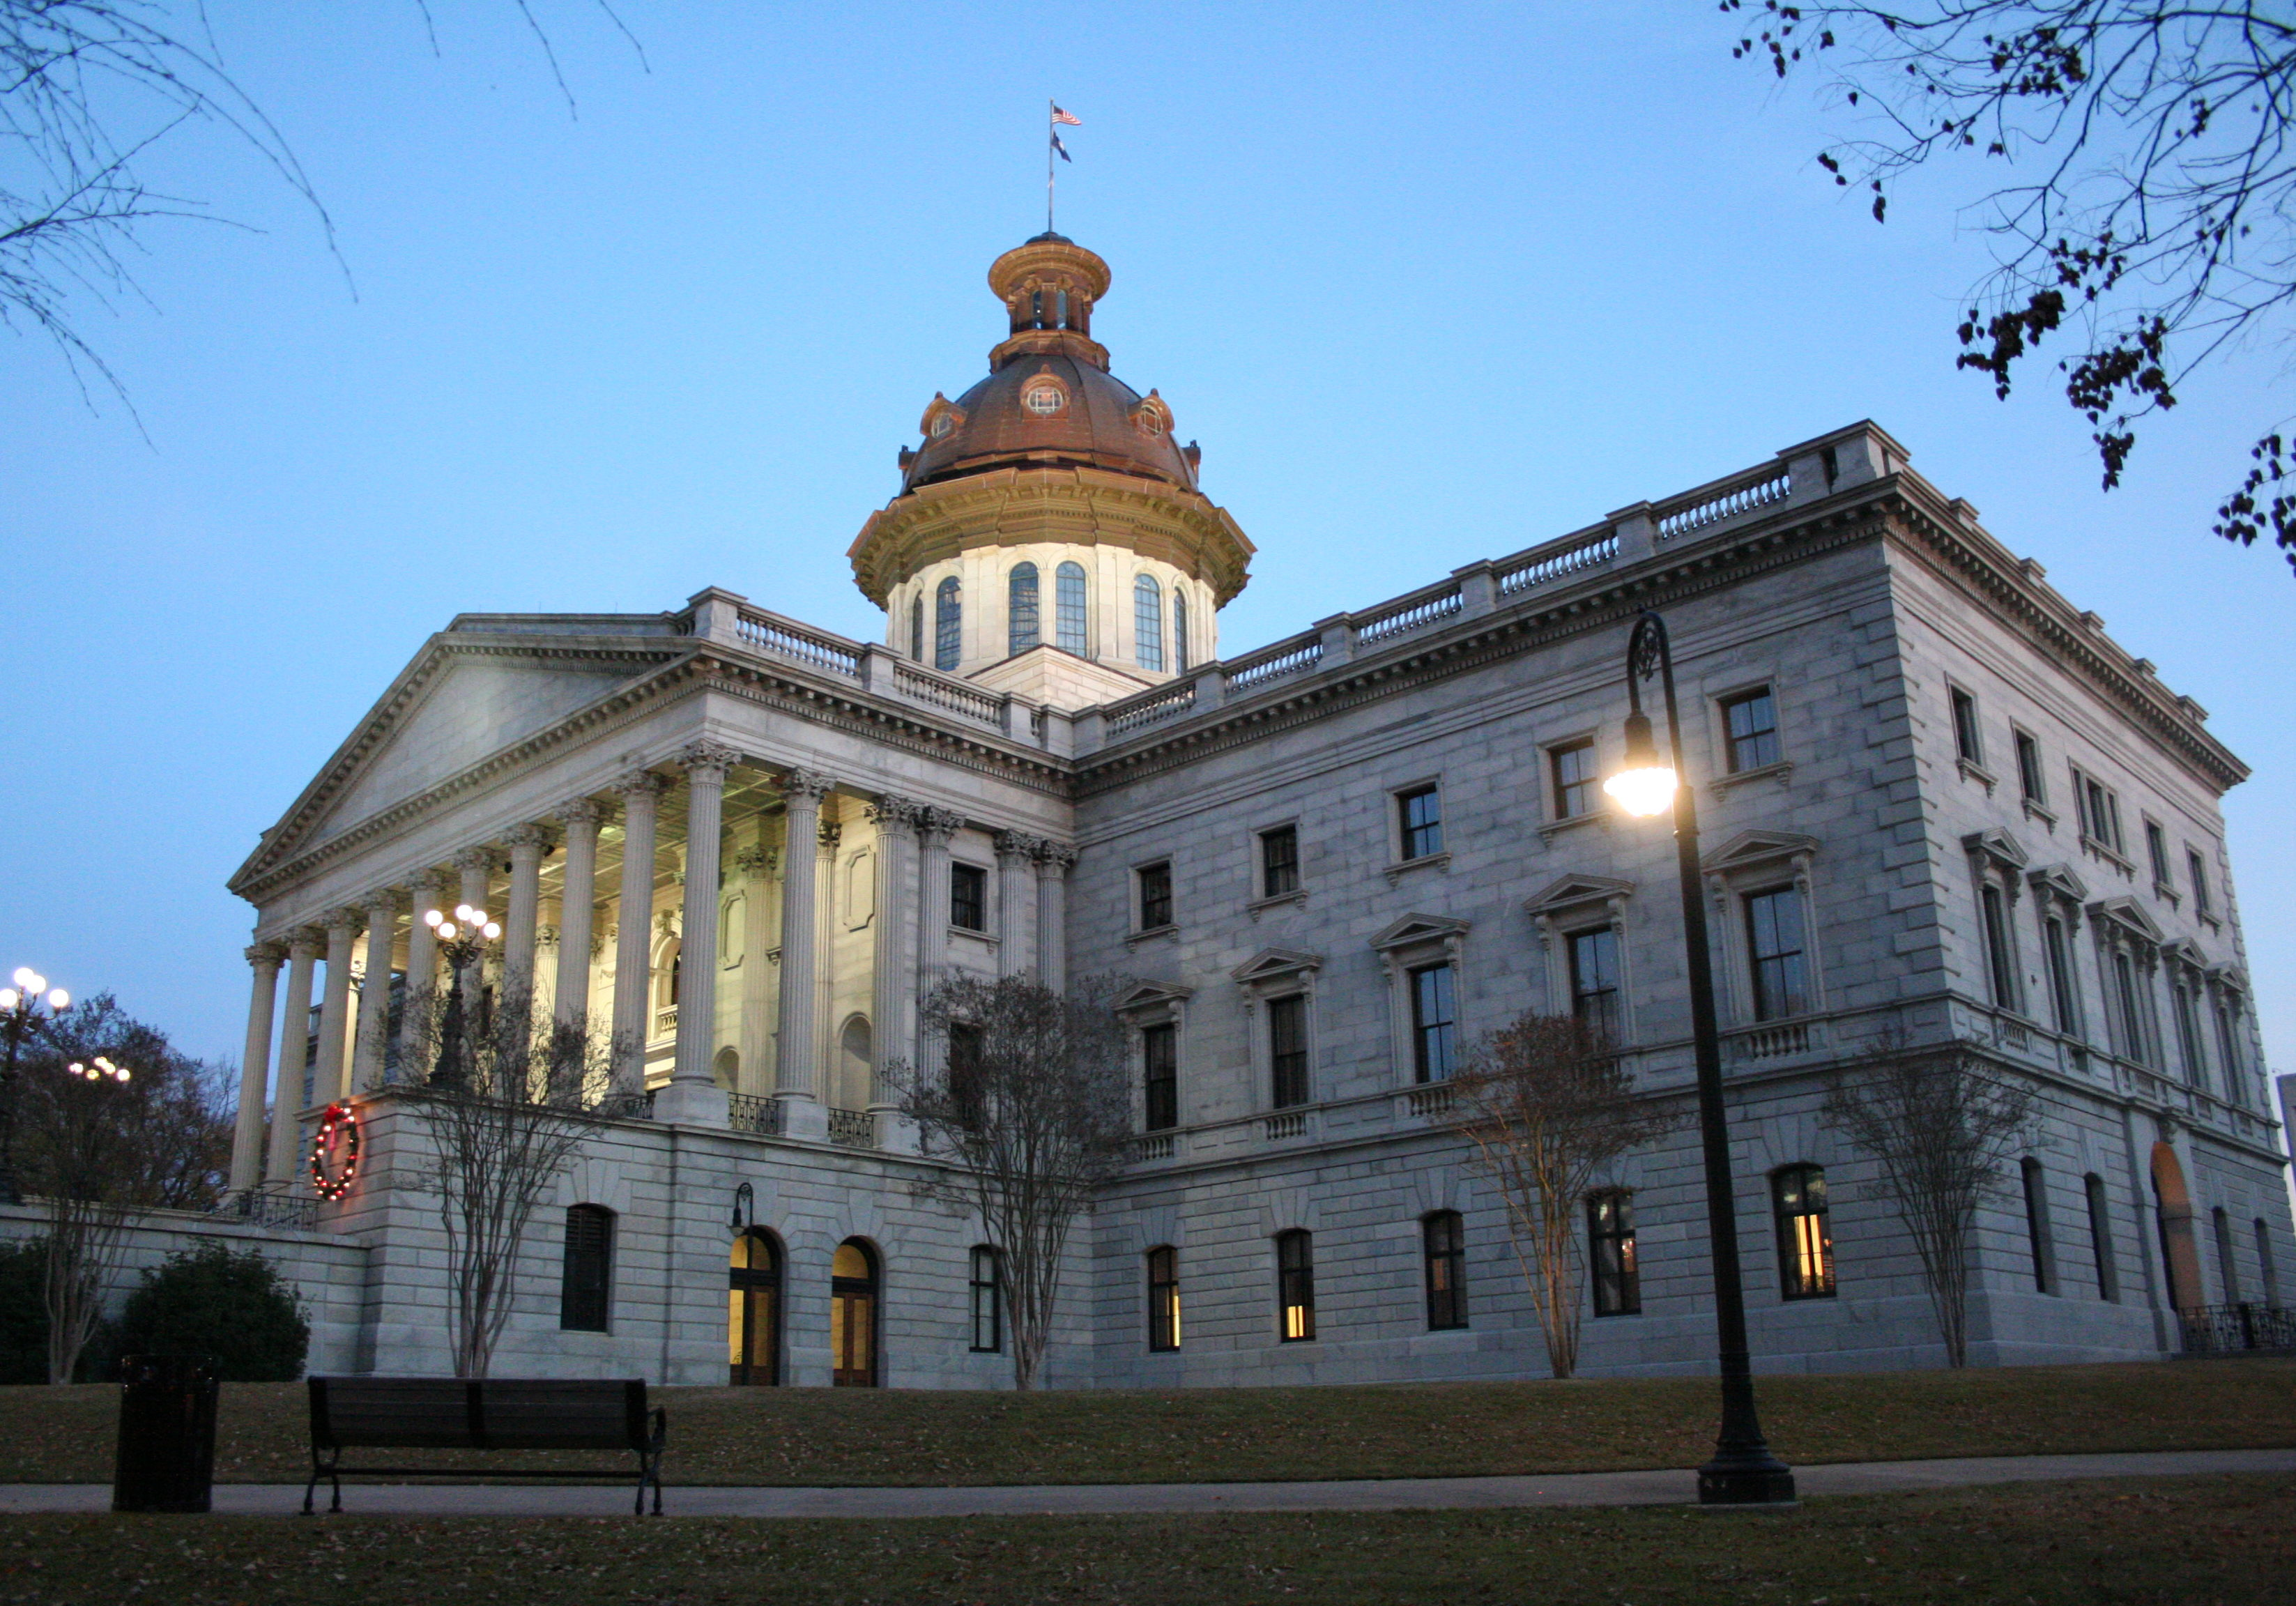 SC_State_House_at_evening